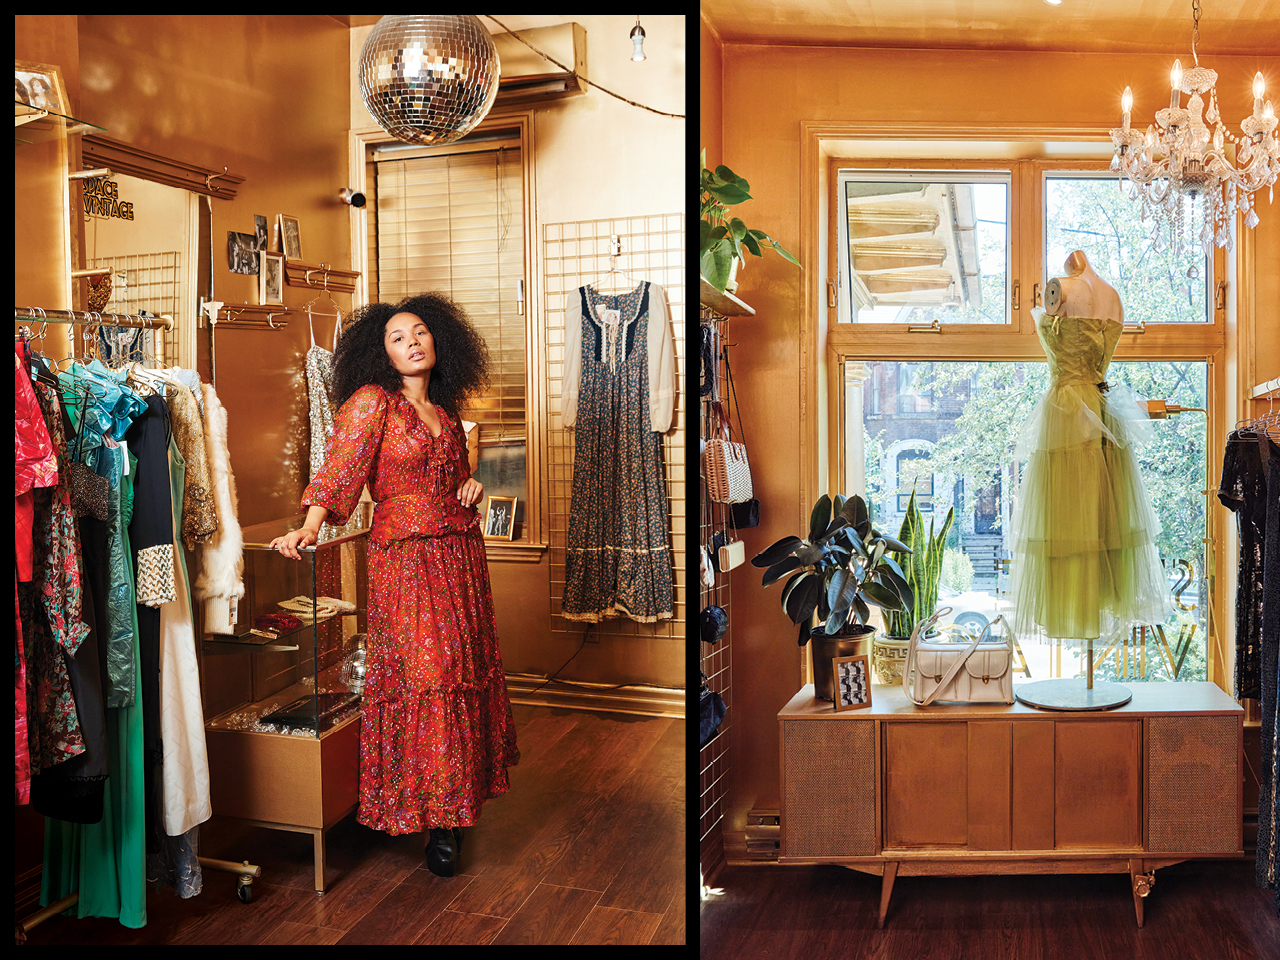 A photo of Space VIntage owner Natasha Roberts in an orange gown in her shop